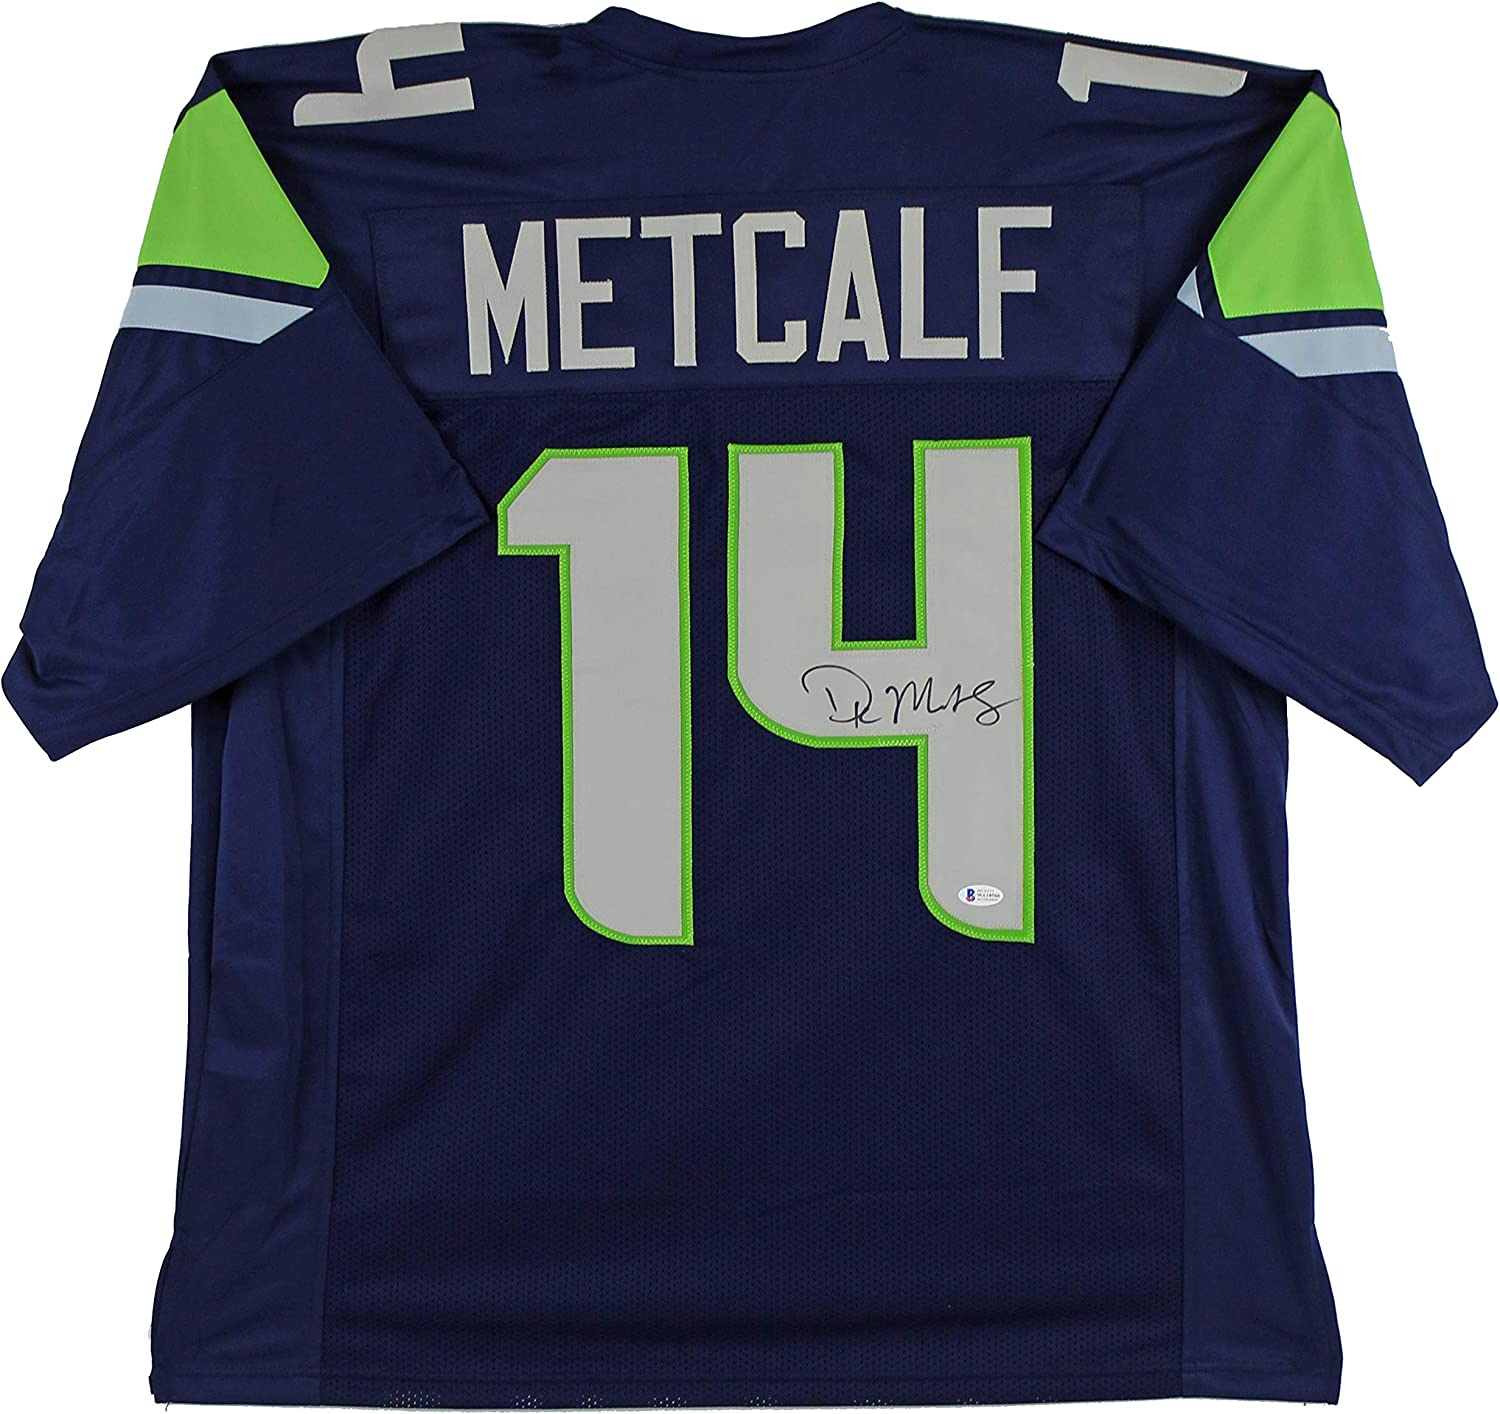 Seahawks D.K. Metcalf Authentic Signed Navy Blue Jersey Autographed BAS